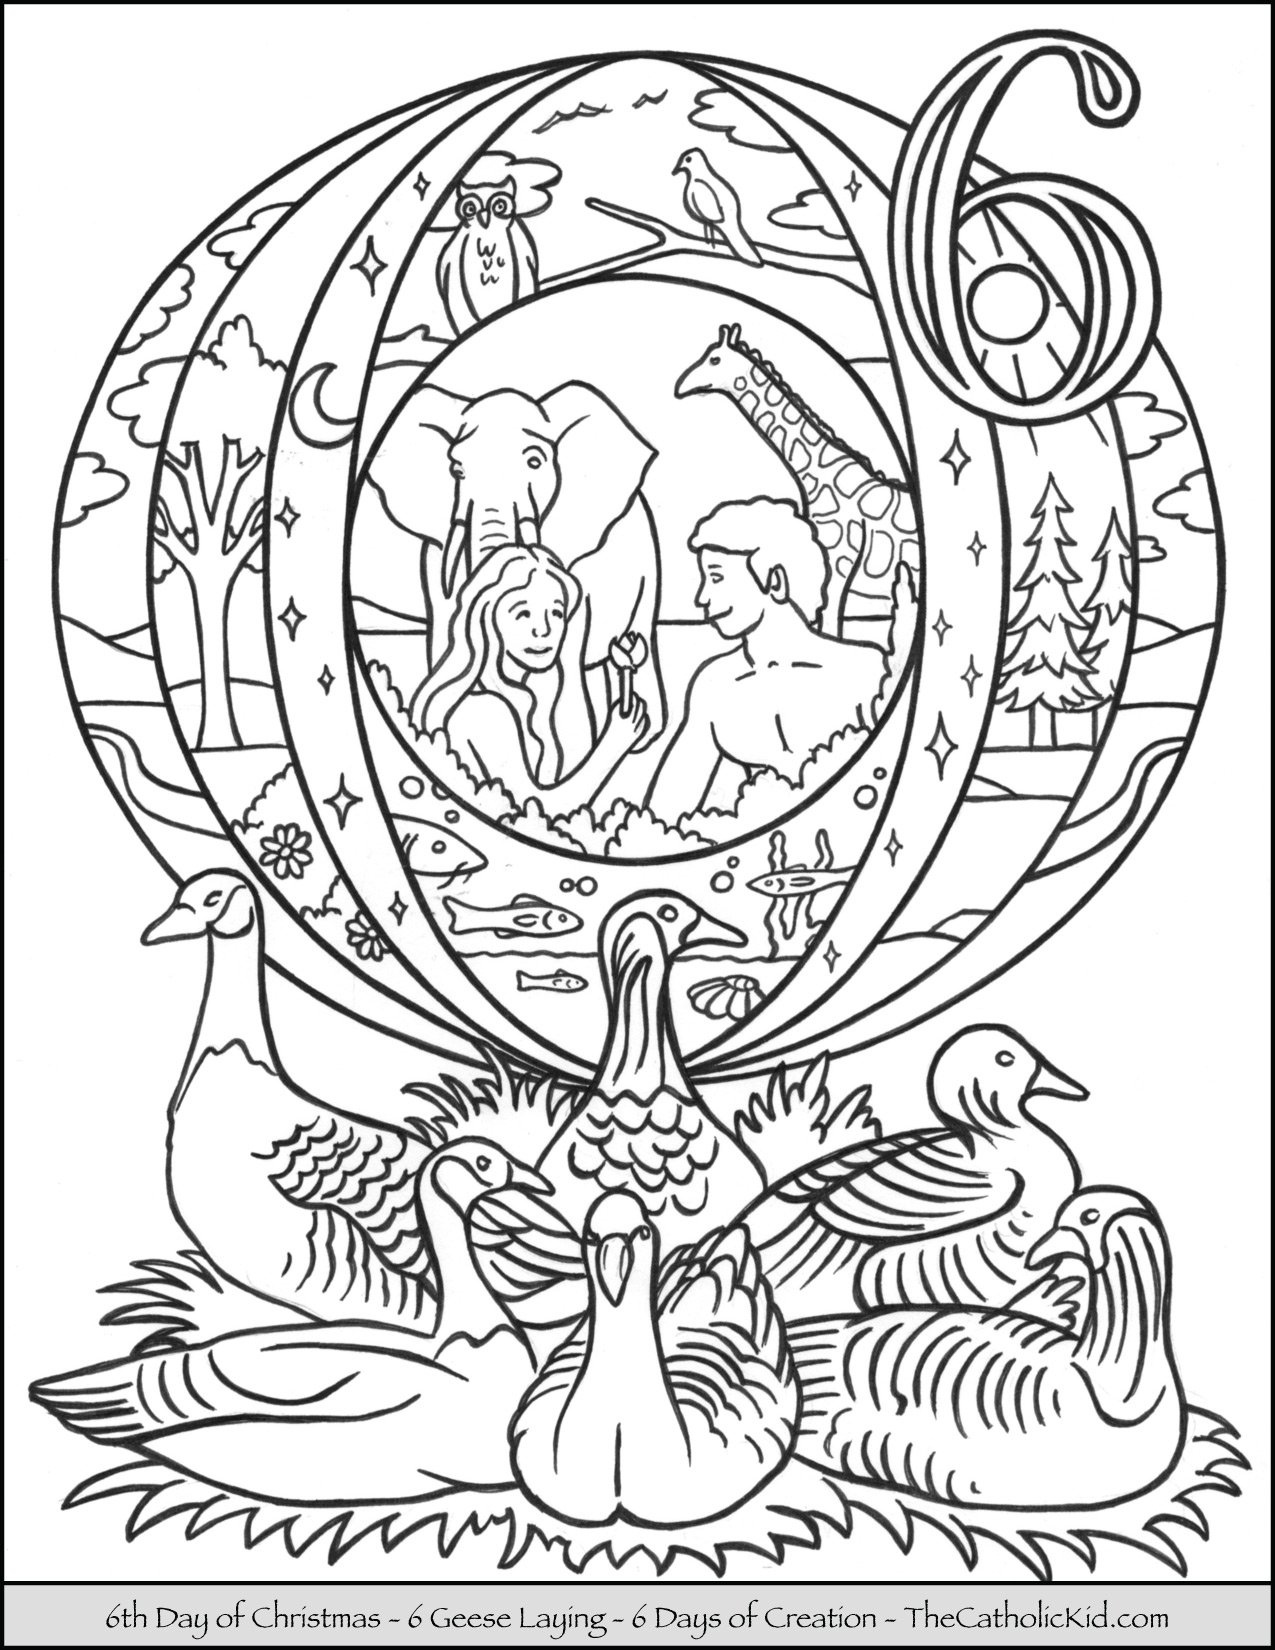 Sixth Day of Christmas Six Geese Laying Coloring Page